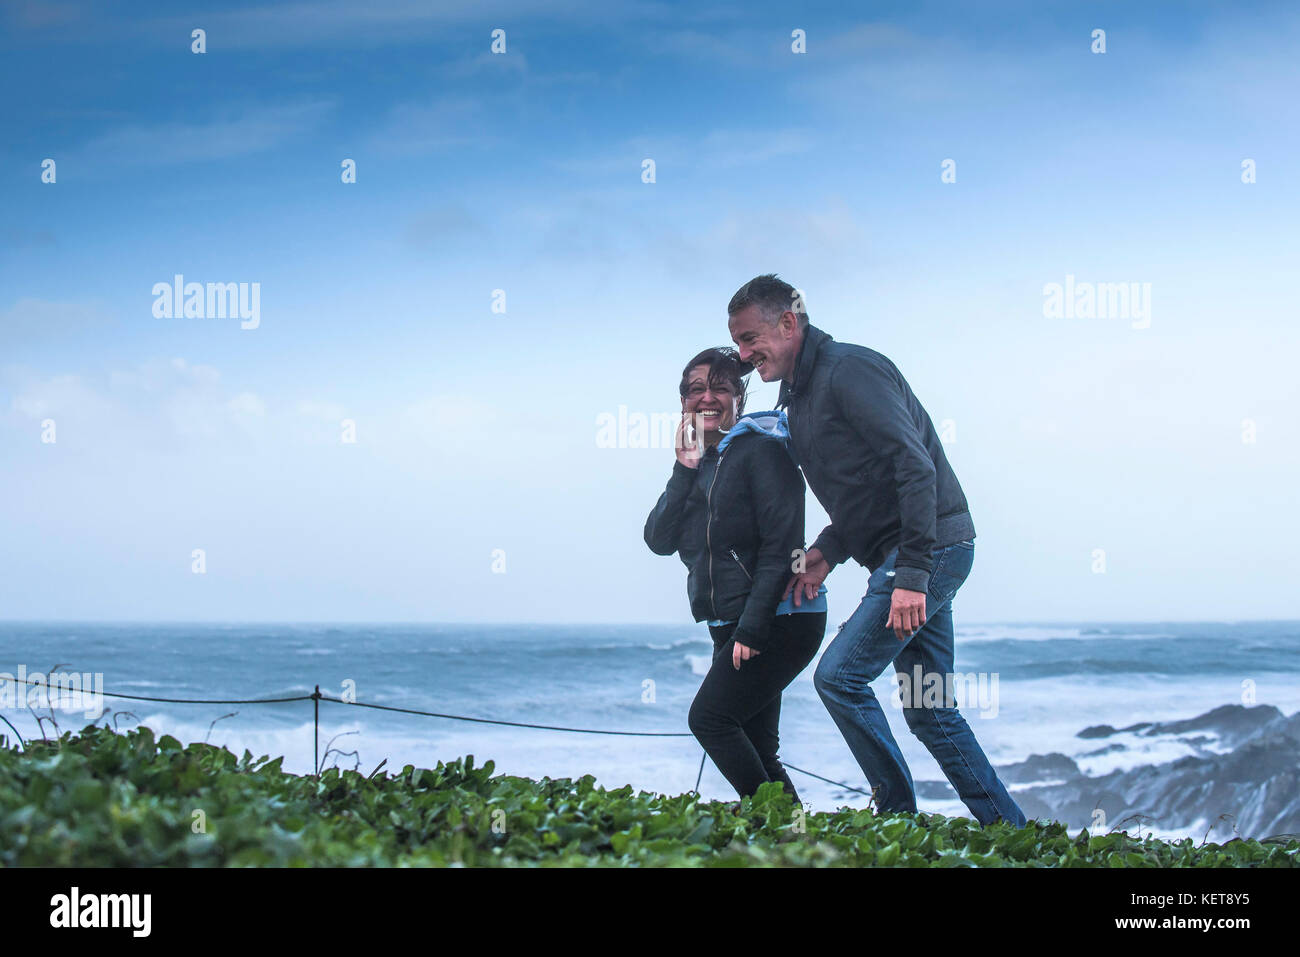 UK Weather Storm Brian - a couple laughing and enjoying walking in stormforce winds as Storm Brian brings severe - Stock Image